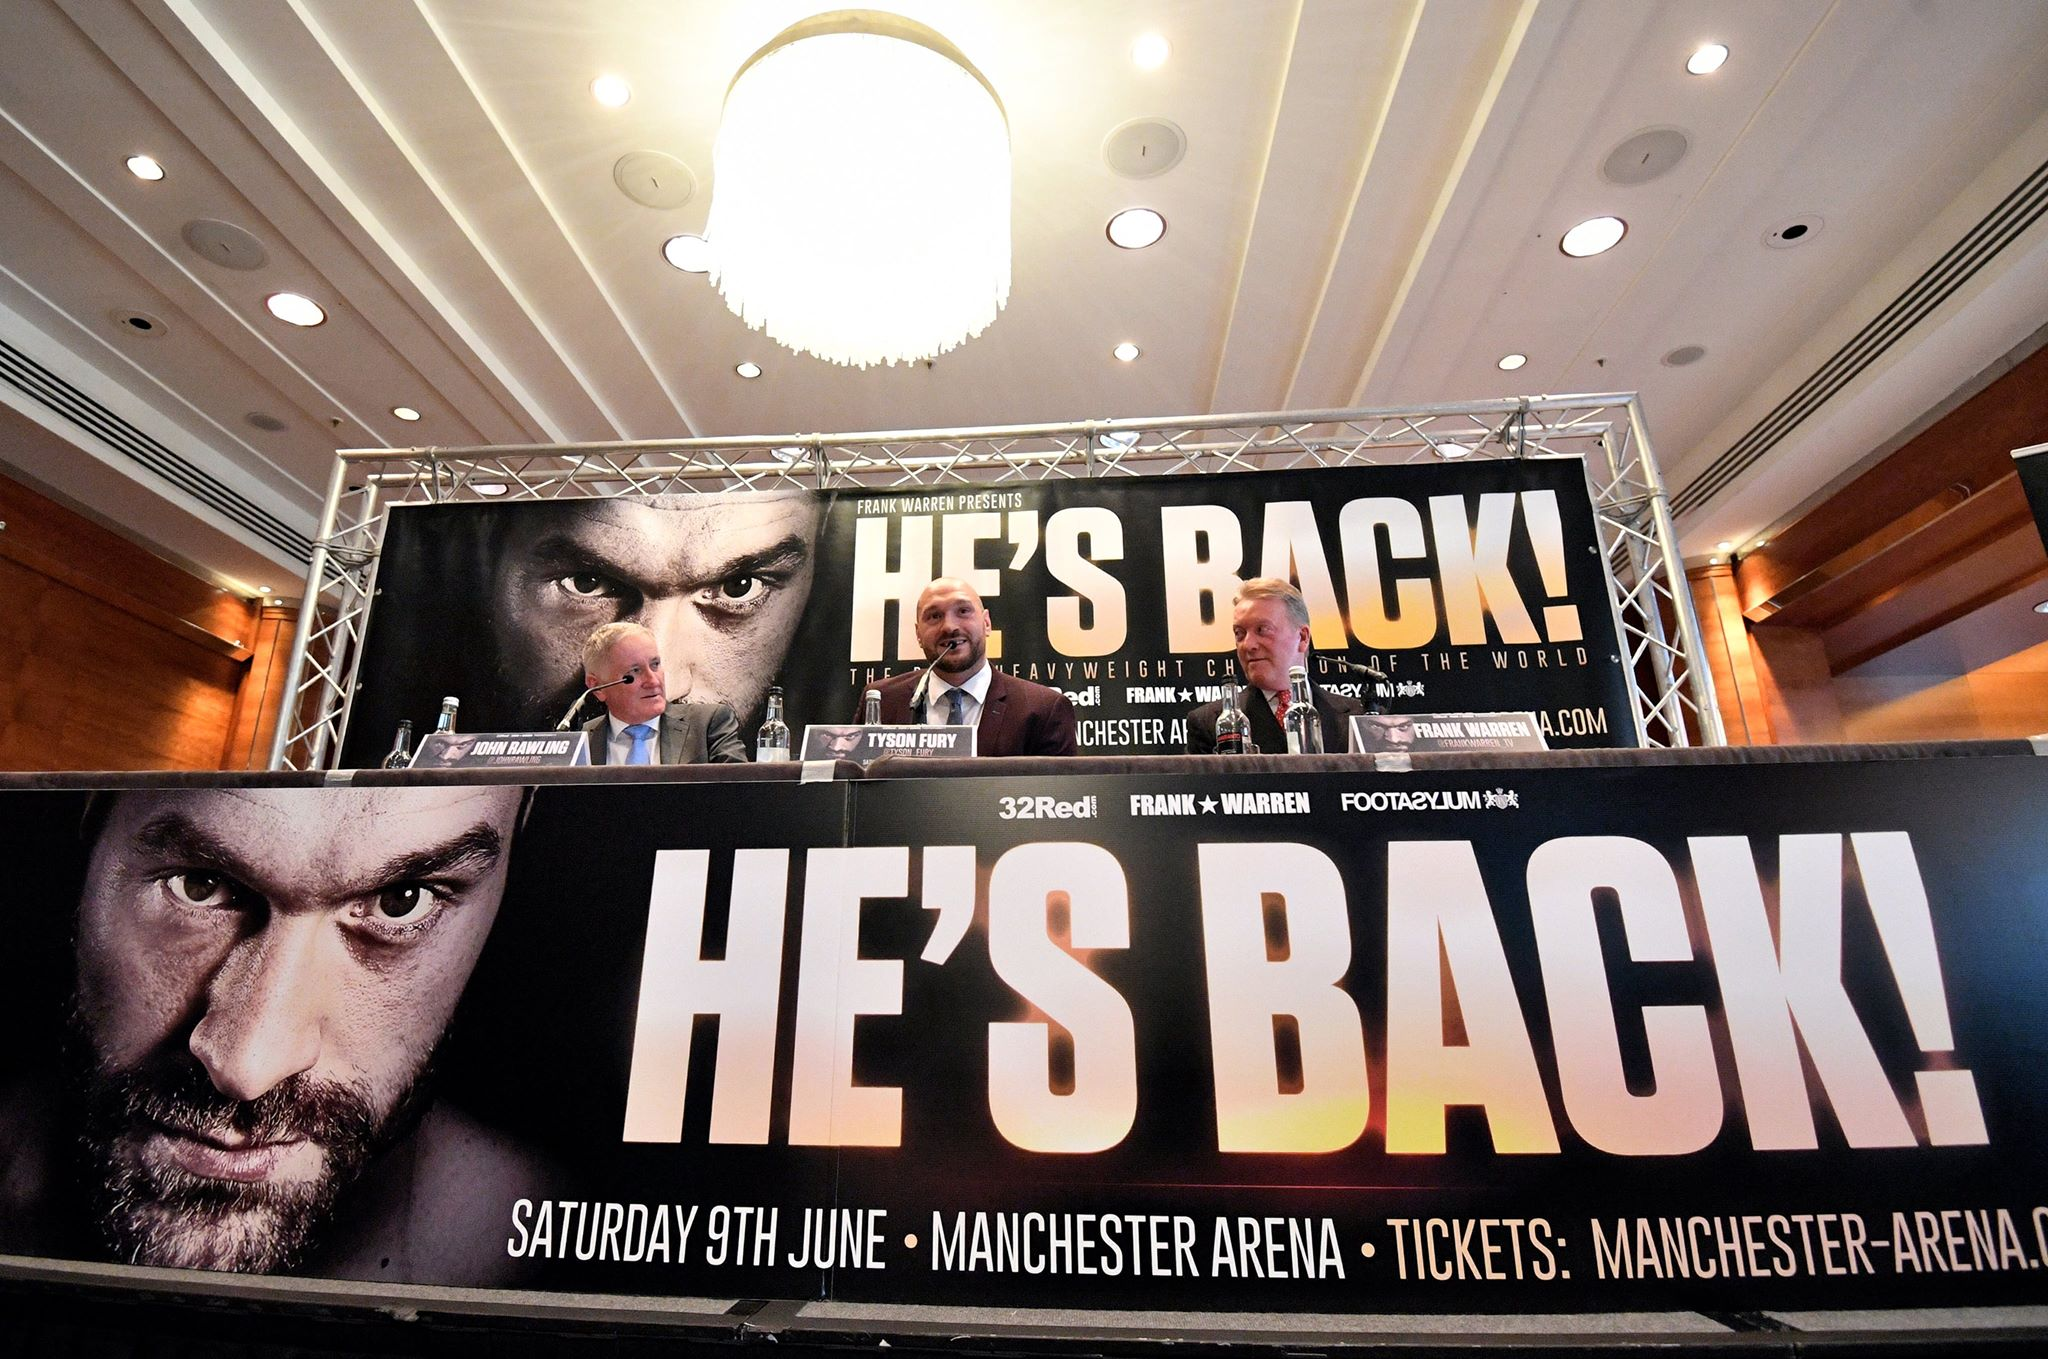 'Do you want some?': Wealdstone Raider crashes Tyson Fury presser